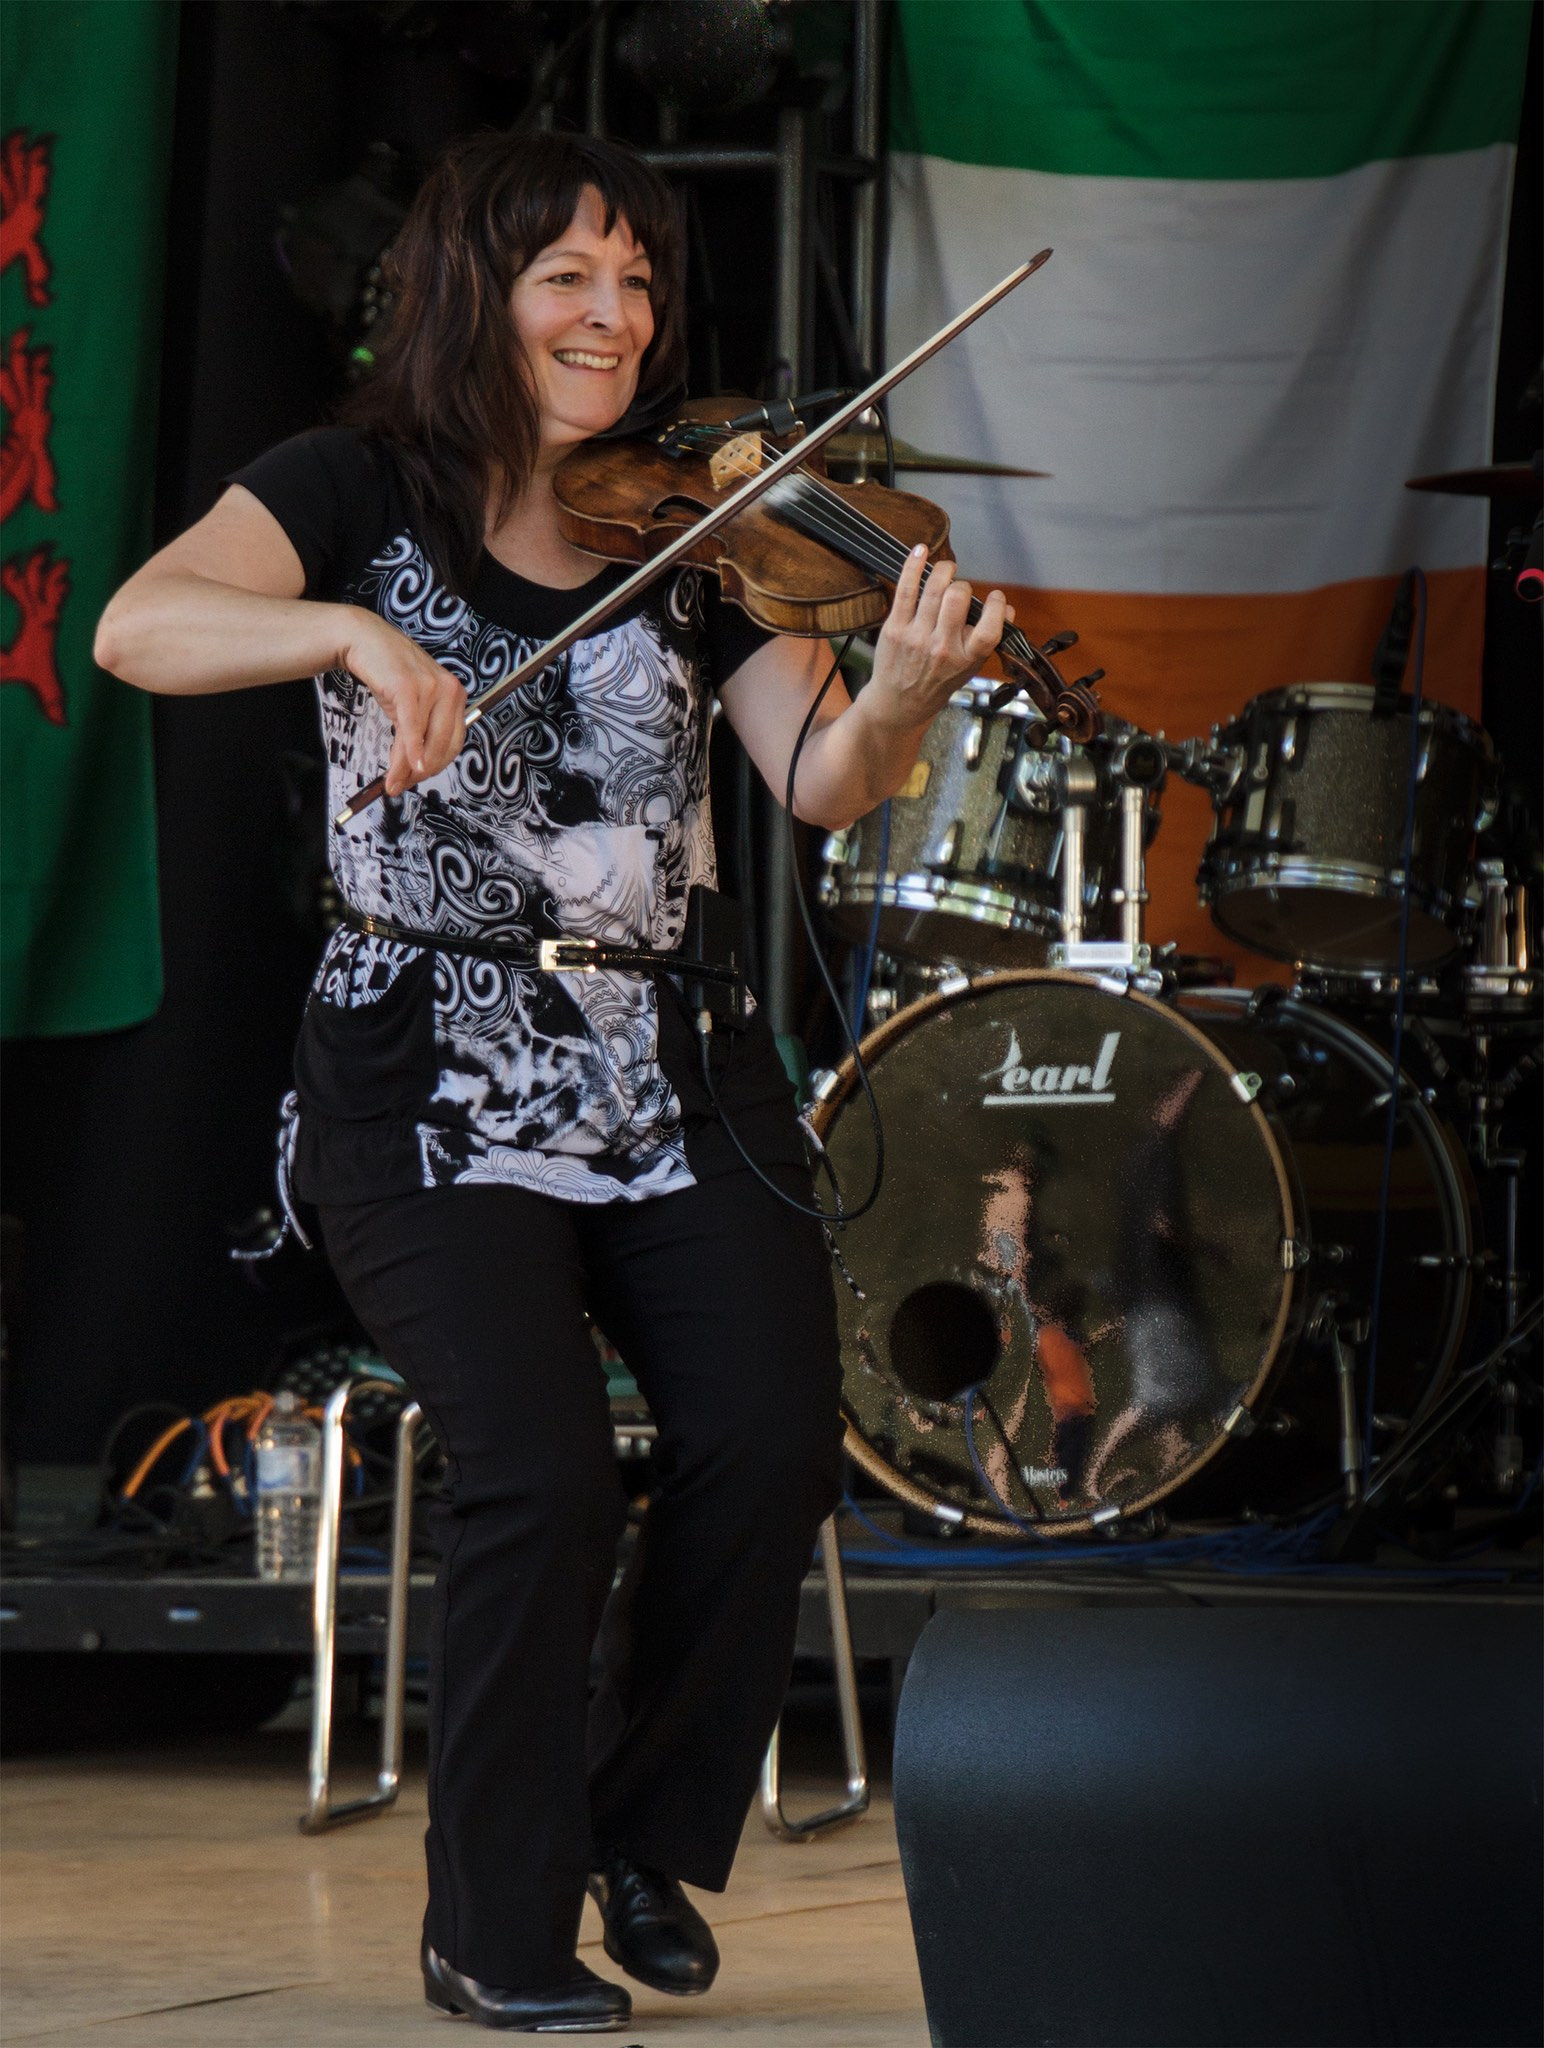 Cindy Thompson similing, step dancing and playing the fiddle on stage in front of a set of drums.